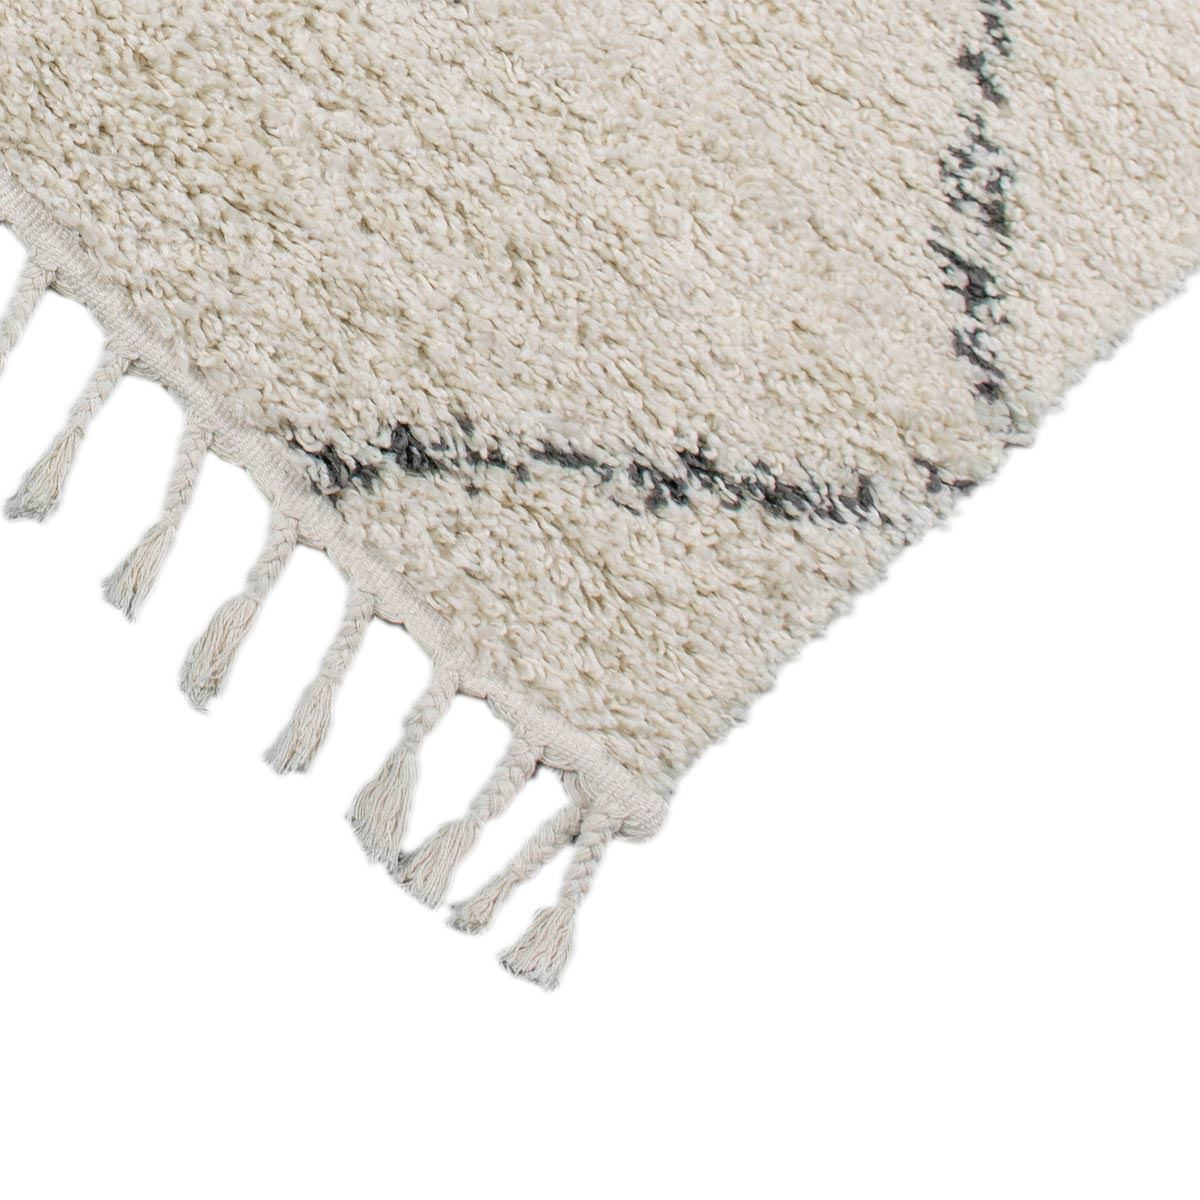 Shaggy Marrakech Rug 03 Cream/Black Runner 3